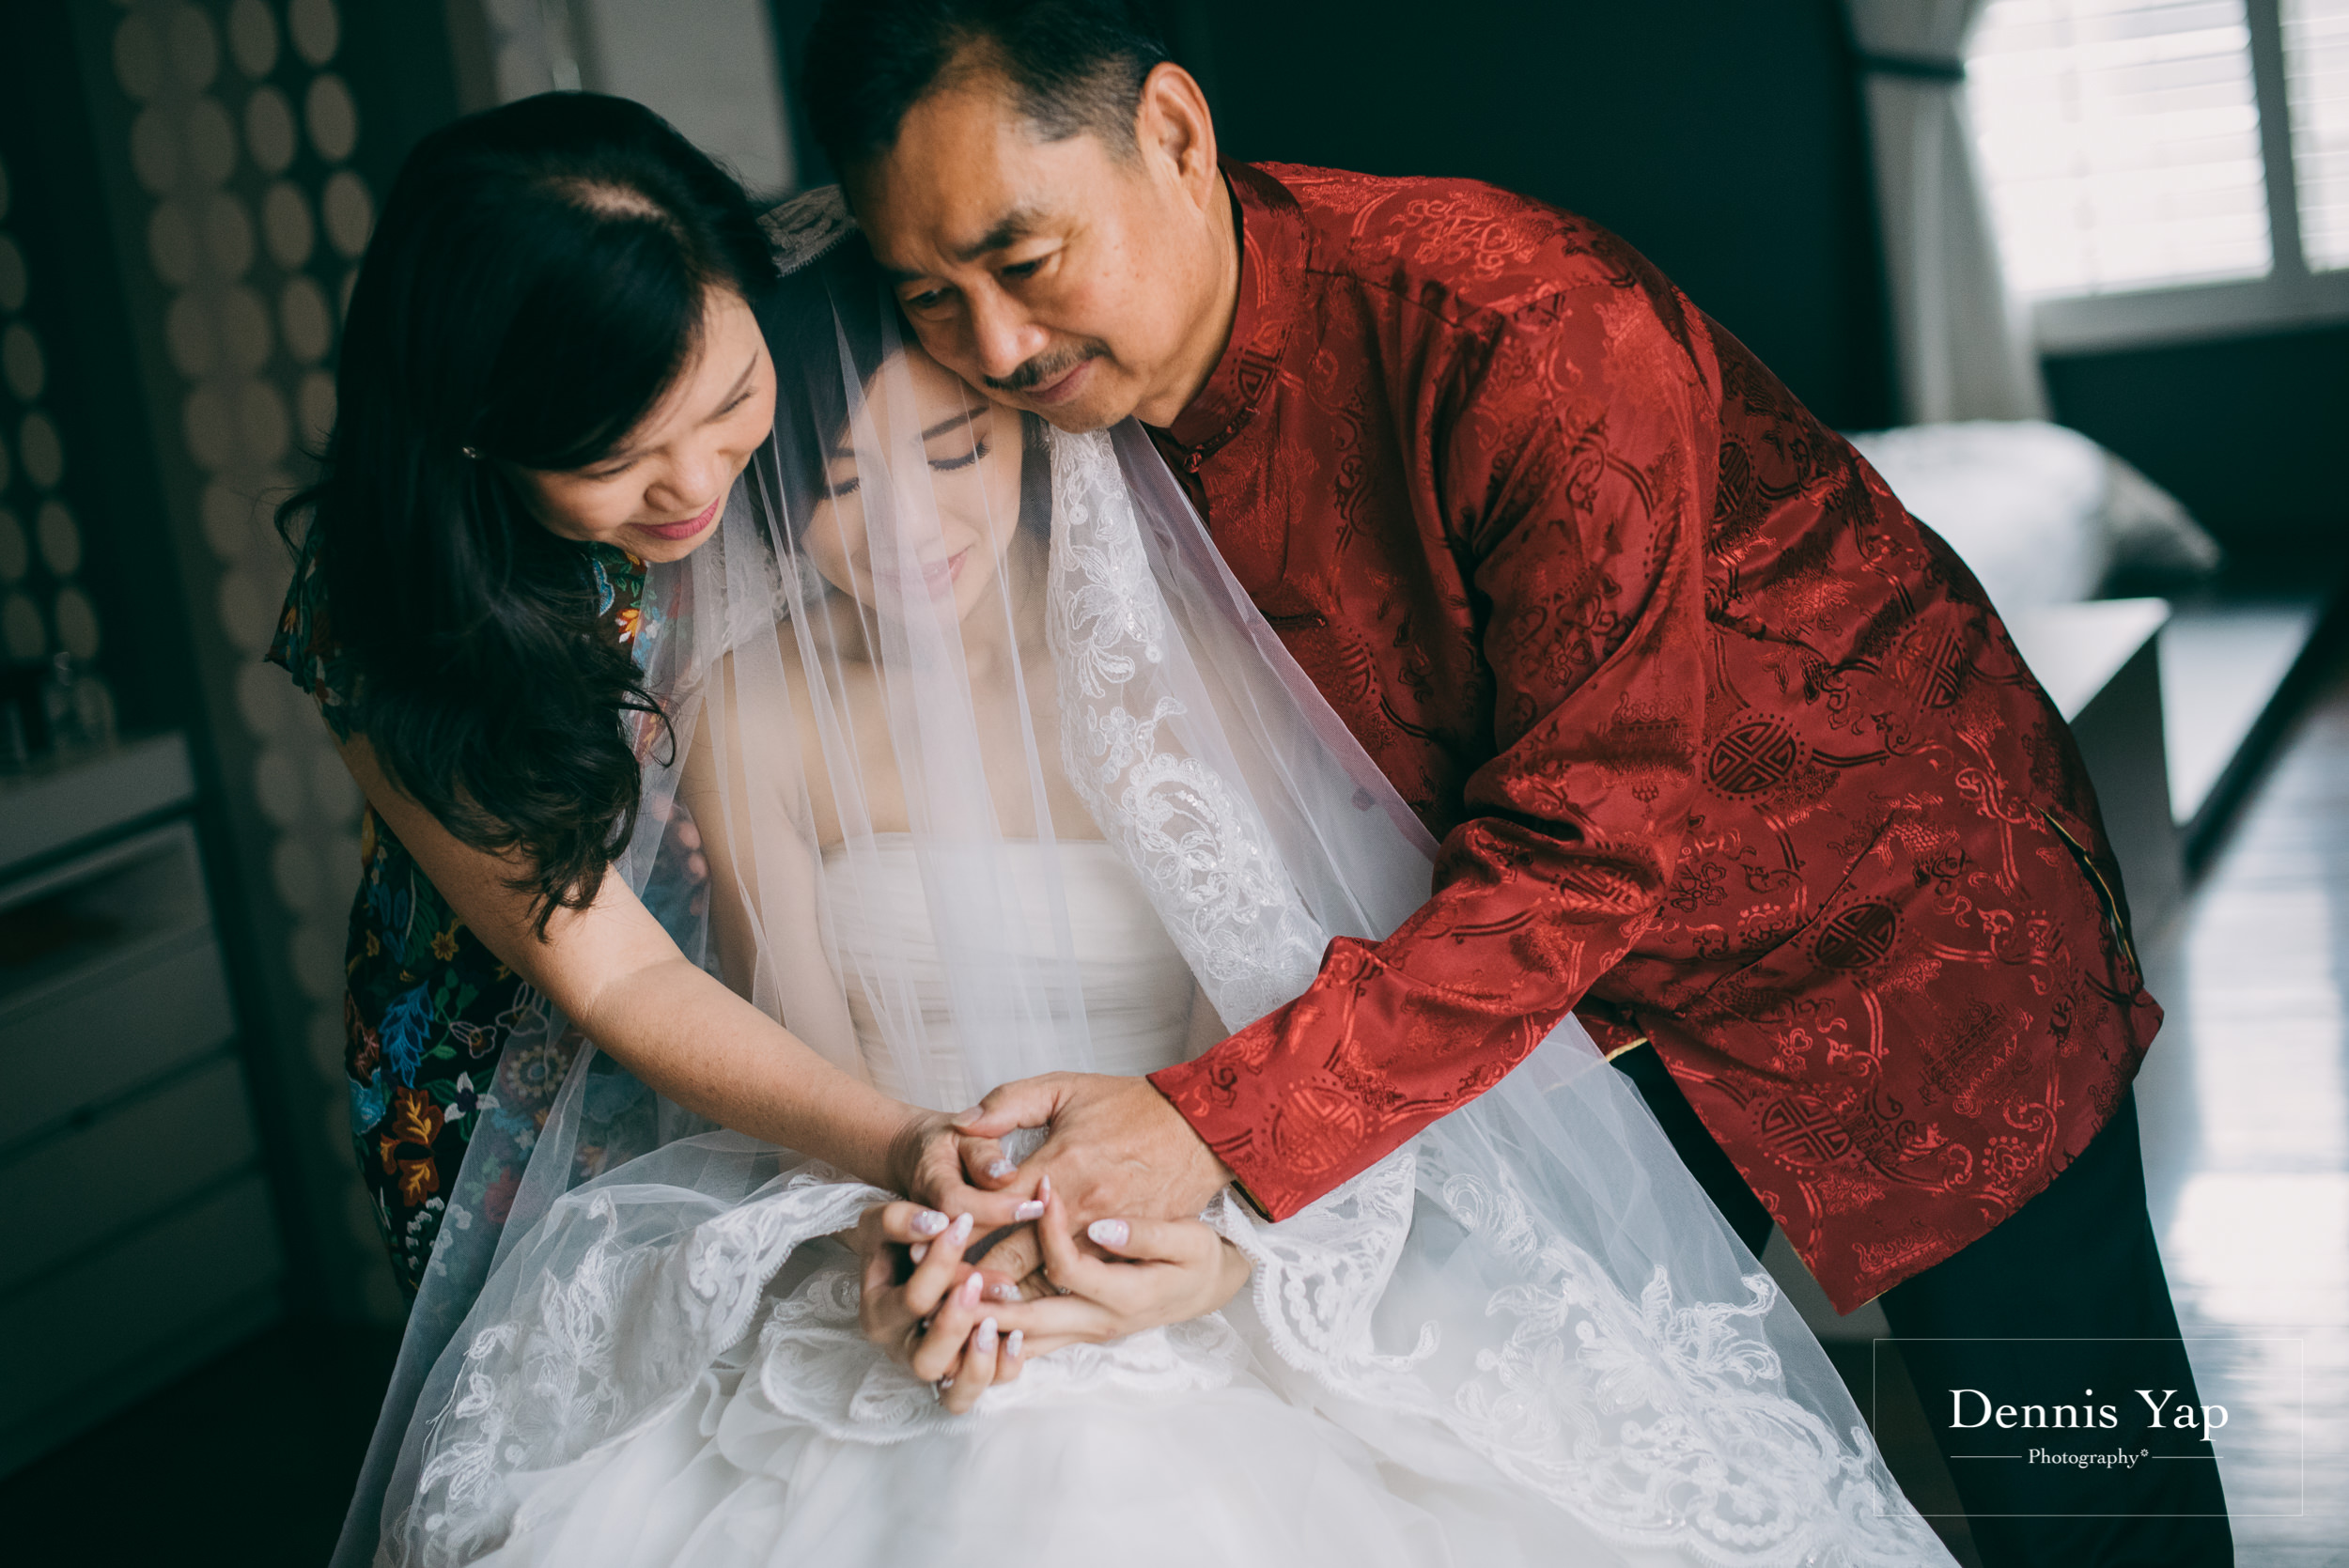 johnson joanne wedding gate crash malaysia wedding photographer dennis yap botanic klang-9.jpg